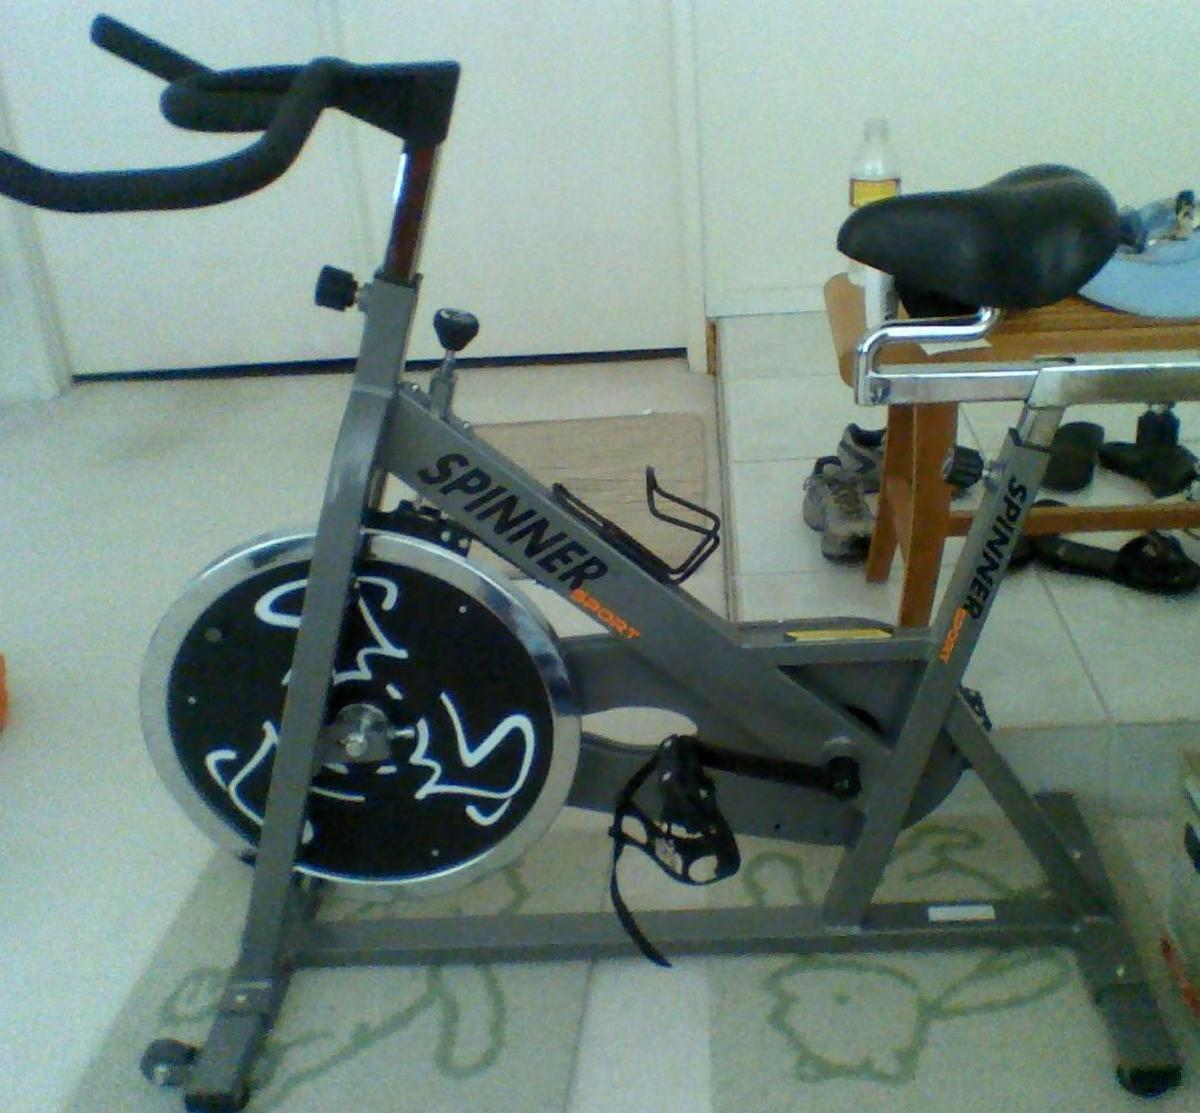 Spinner Sport Exercise Bike Review